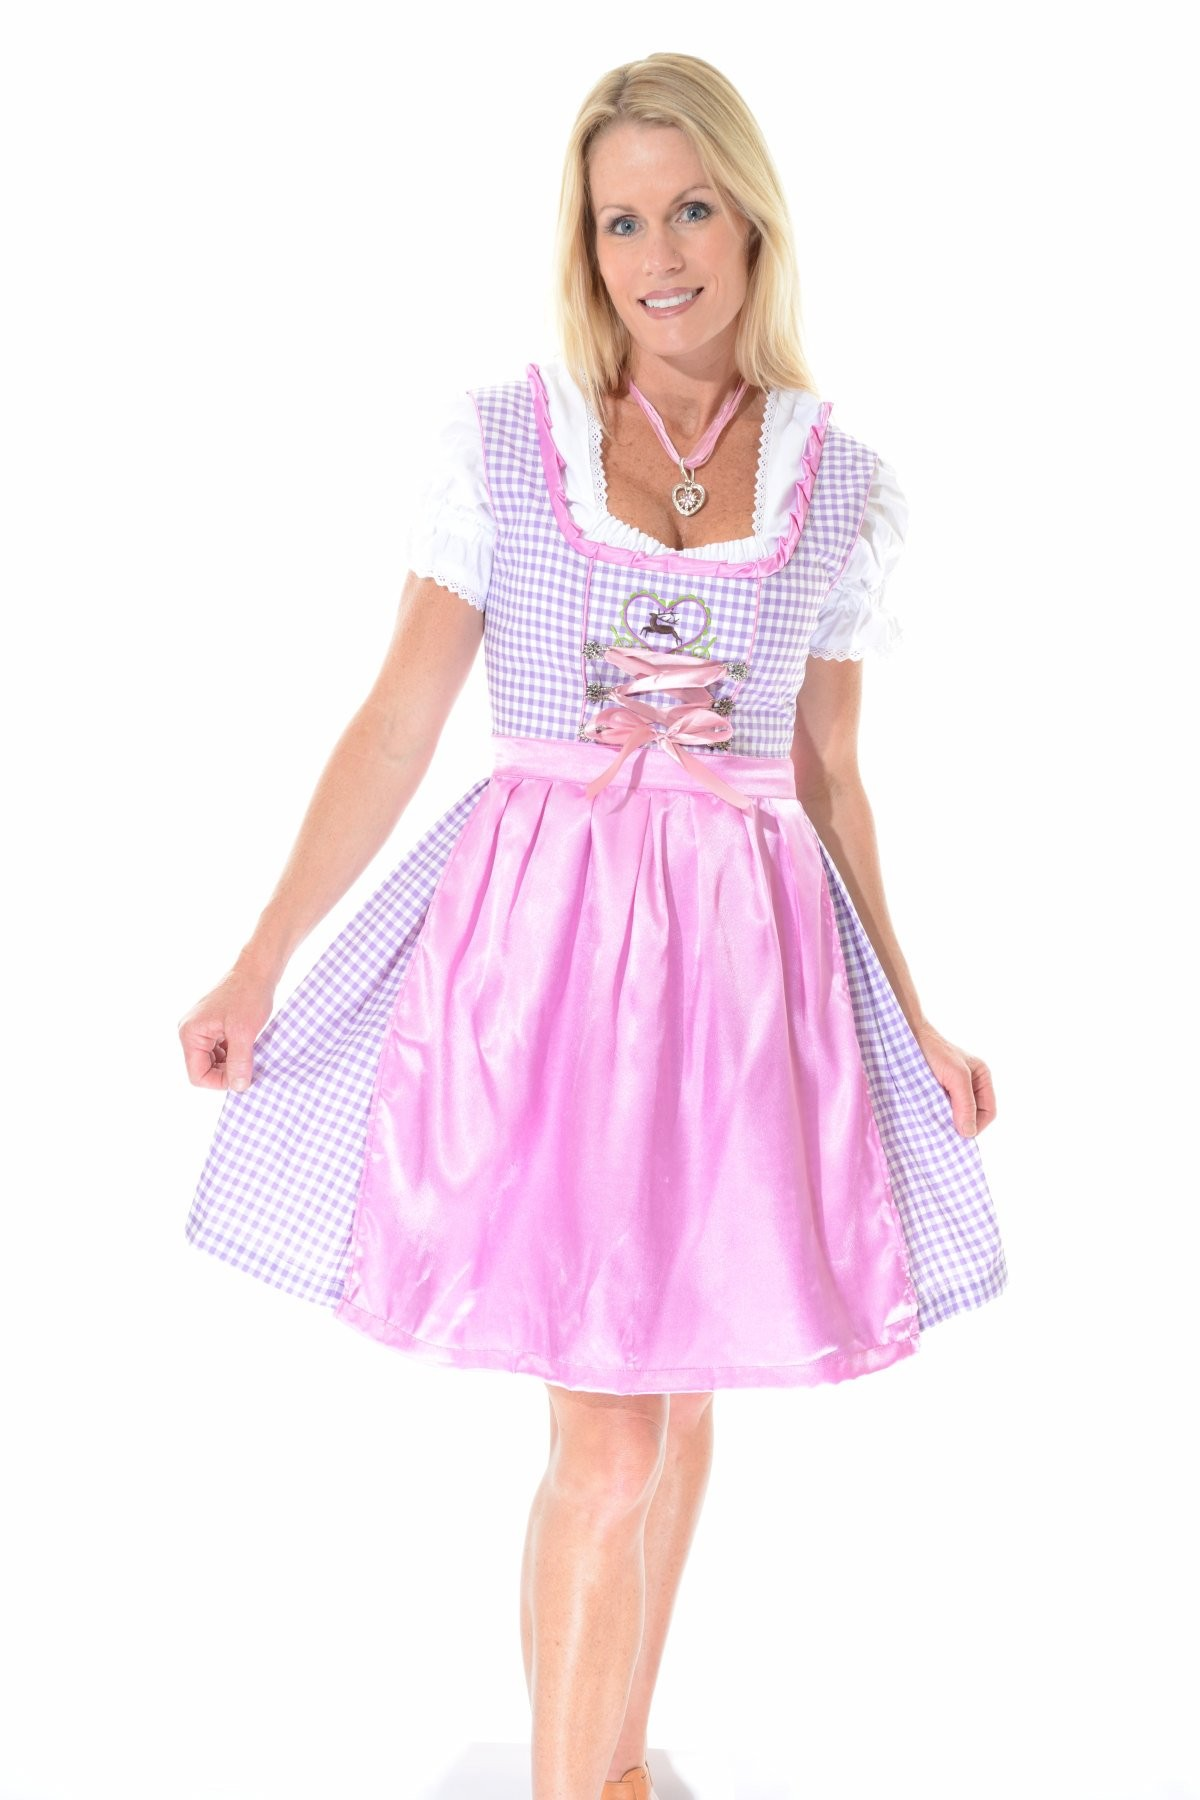 Dirndl costume | Dirndl dress | Dirndls | Dirndl